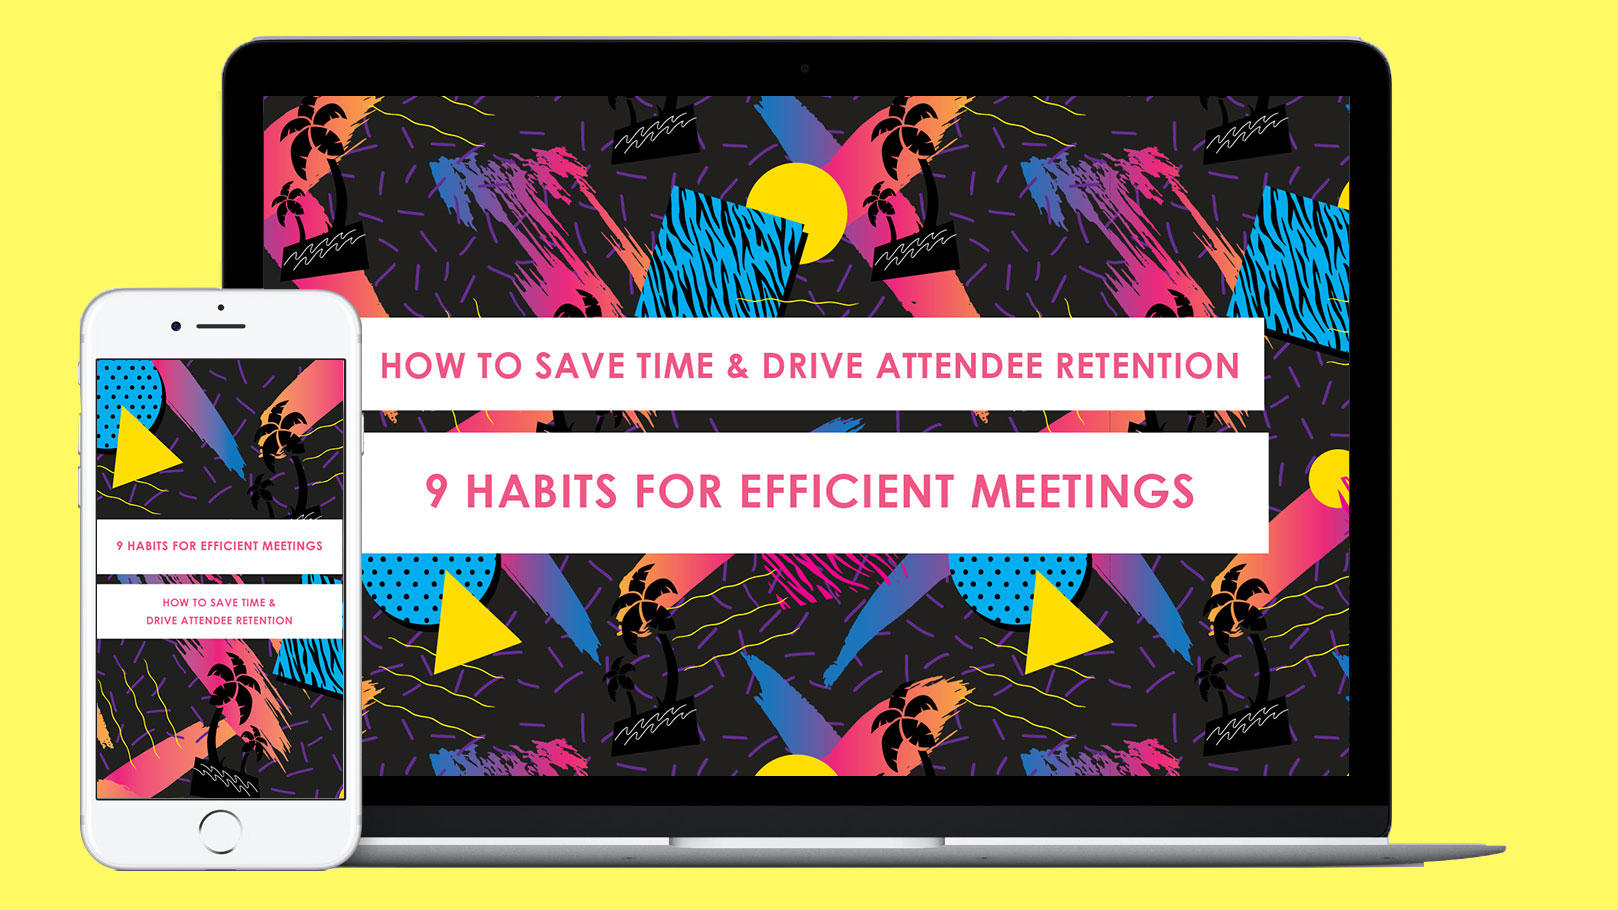 How to save time and drive attendee retention, 9 habits for efficient meetings